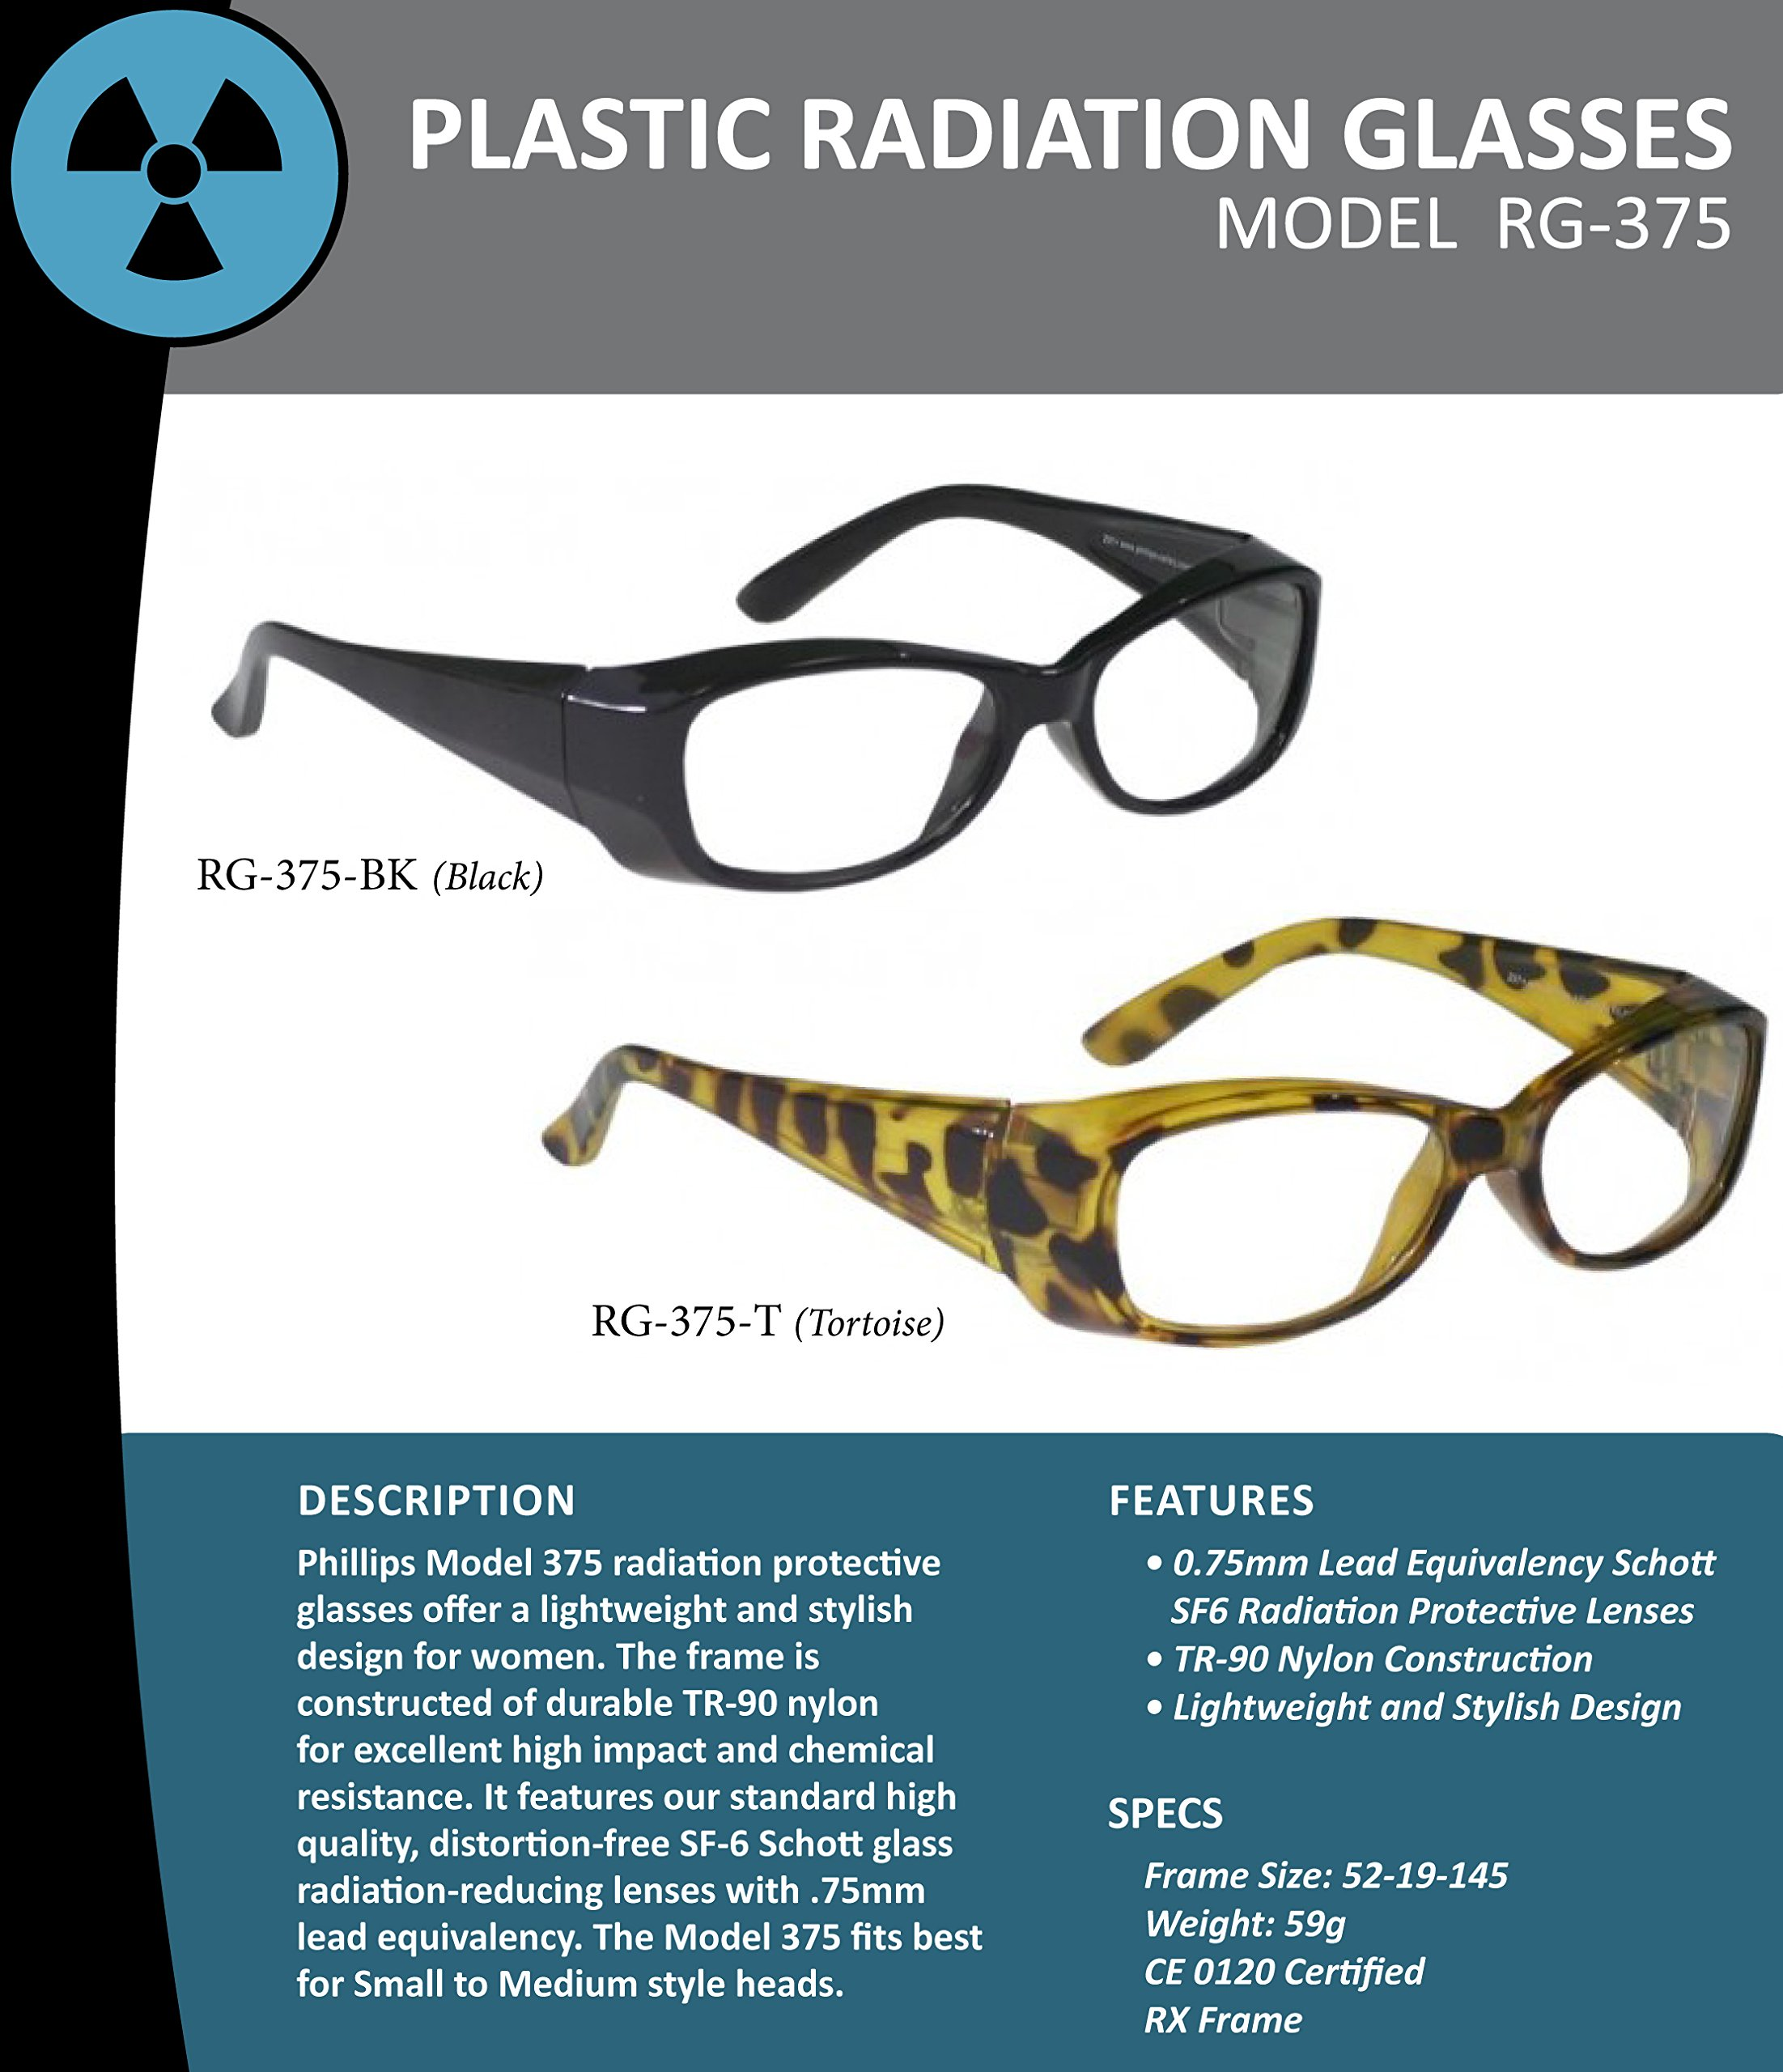 X-ray Radiation Leaded Protective Eyewear in Stylish, Lightweight and Comfortable Women's Plastic Safety Frame That Is Designed to Hug the Contour of Your Face Blocking Light From All Angles